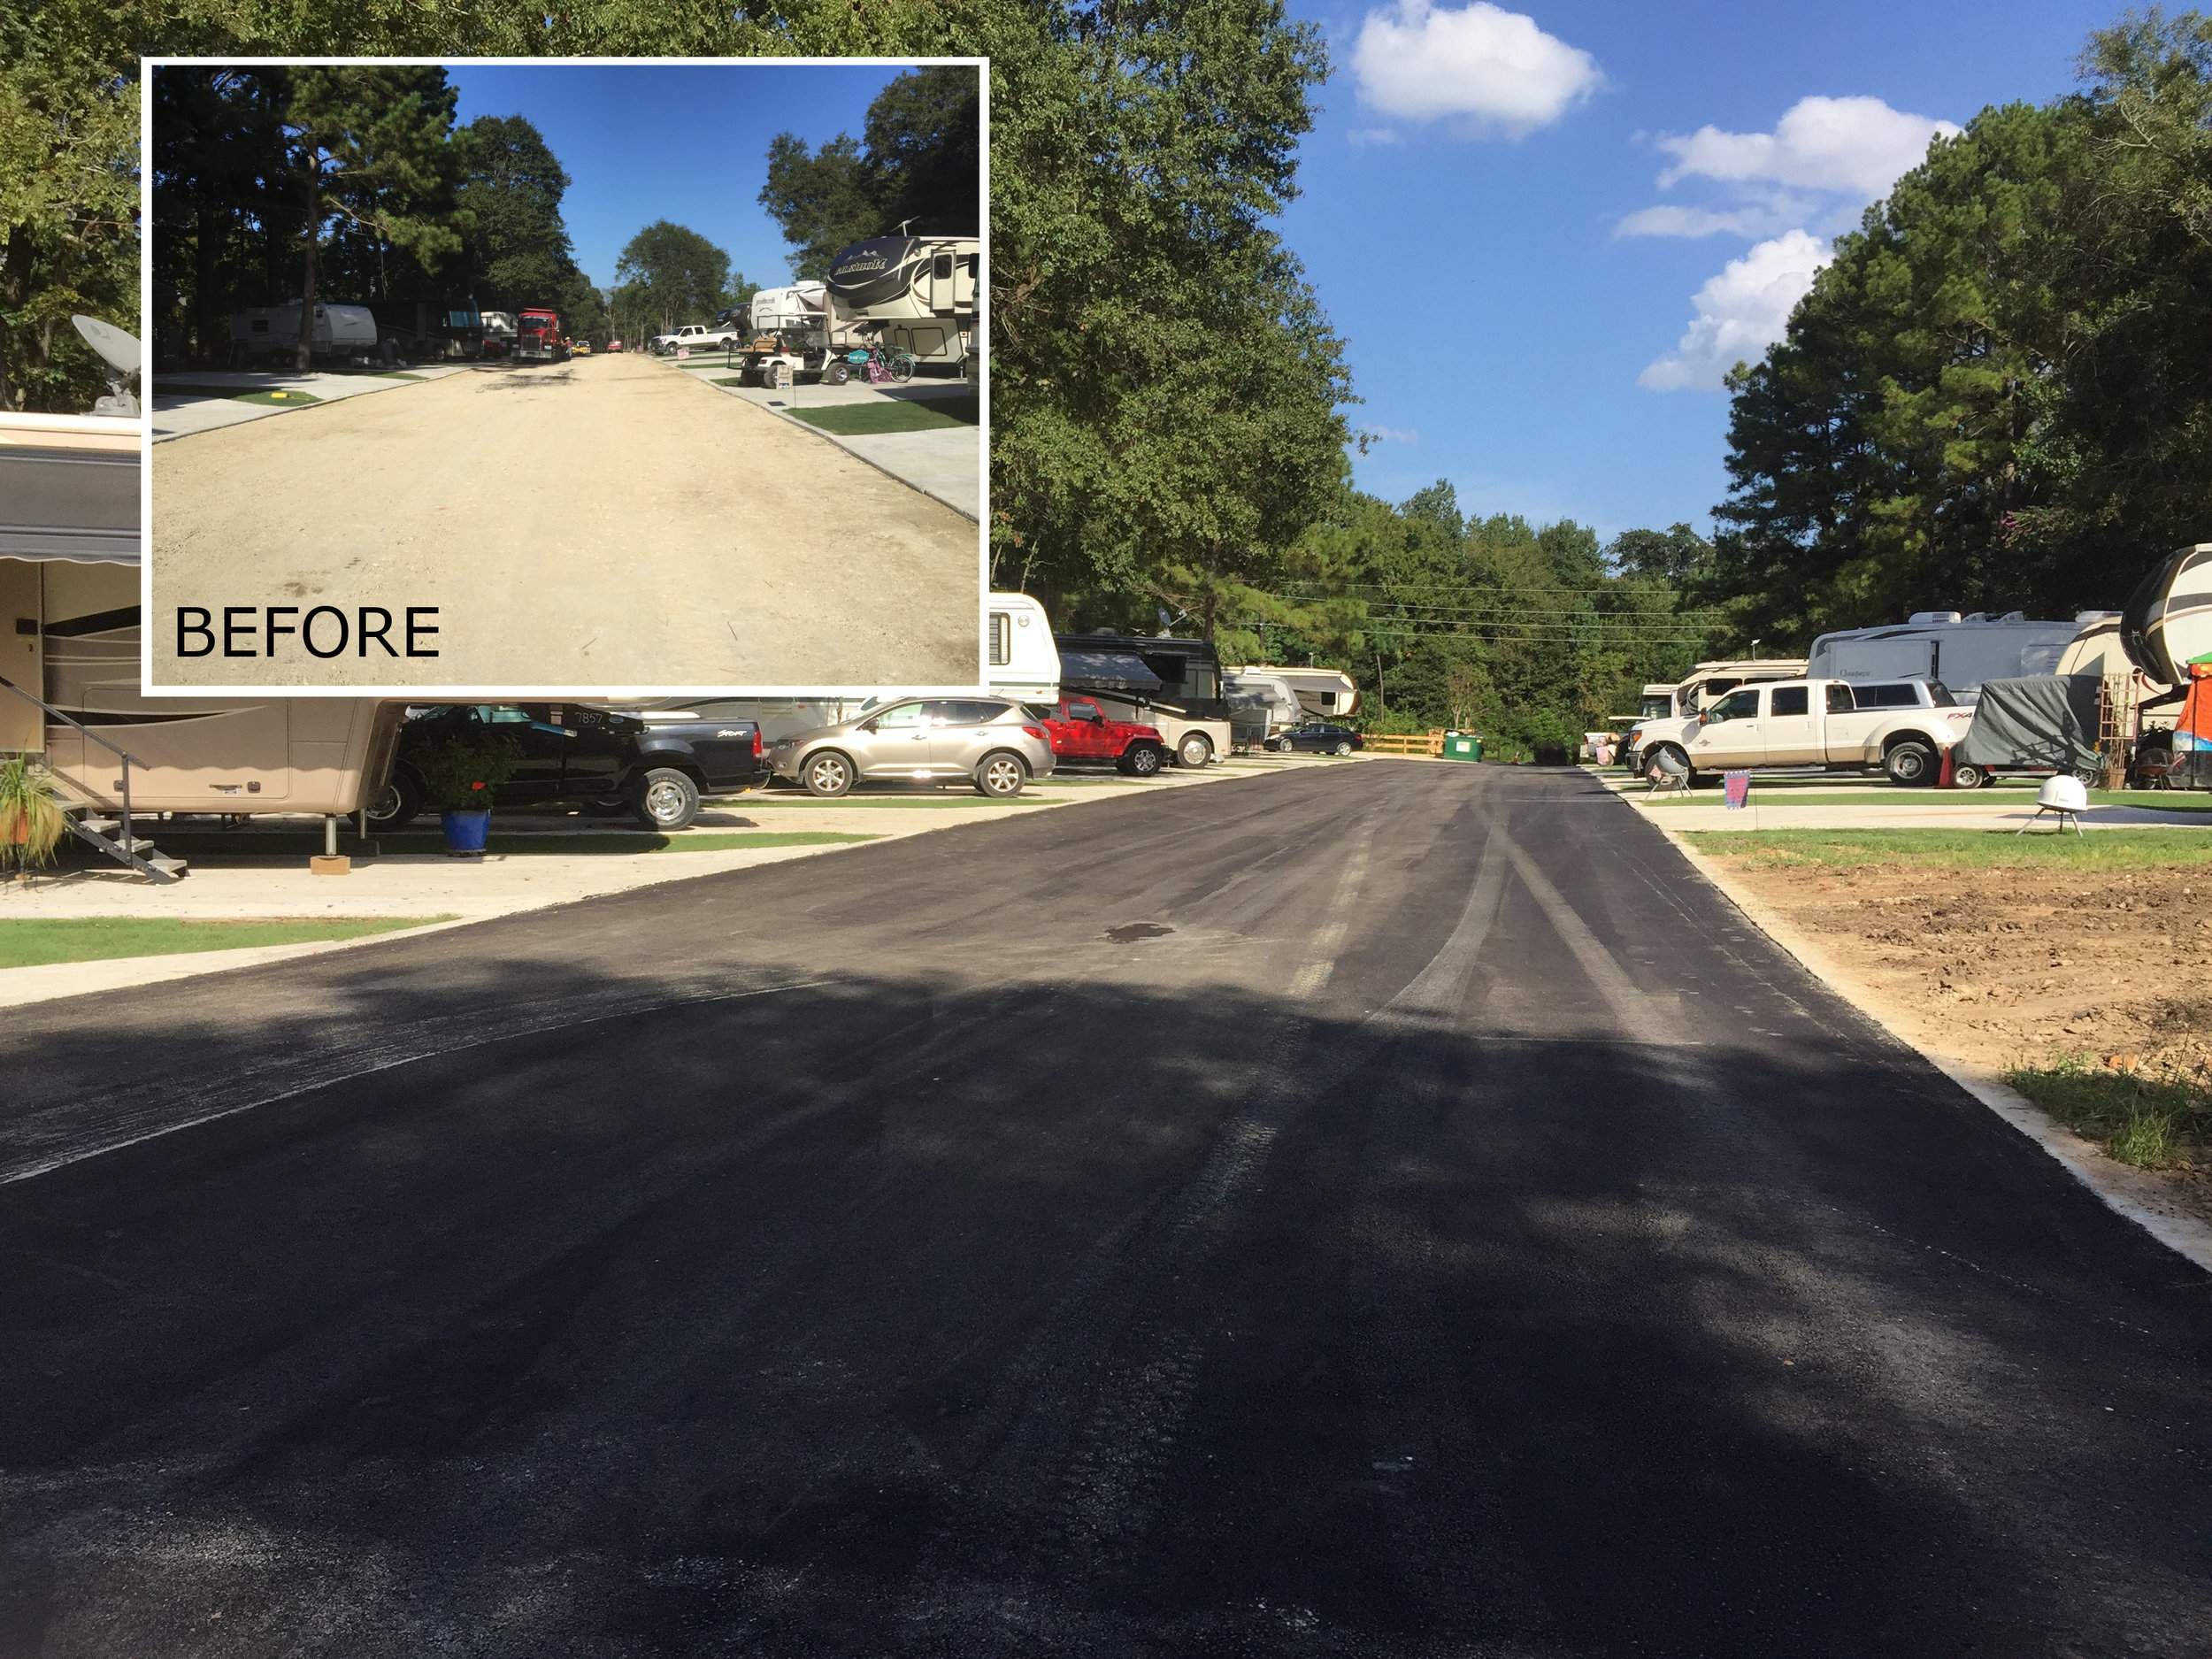 Roads - (Image: RV Park, before & after)